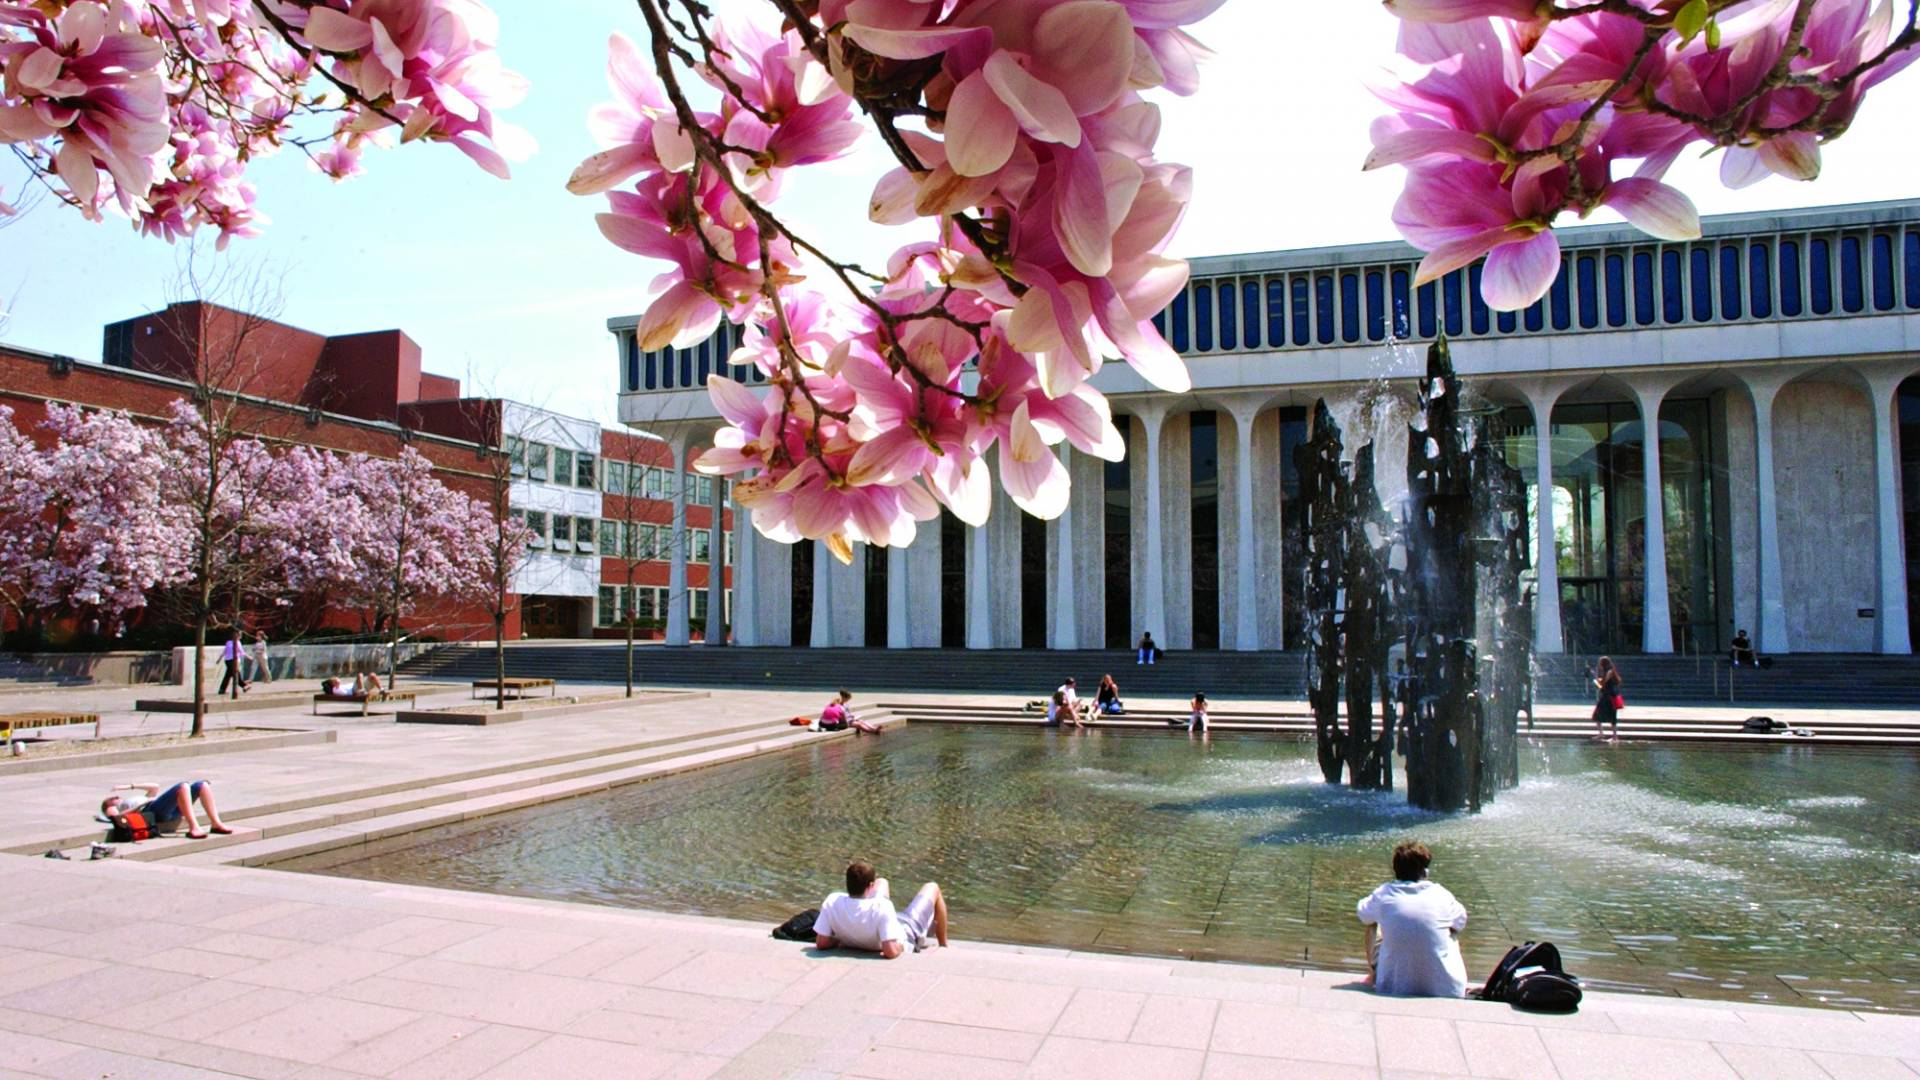 Photo of tree blossoms framing a view of Scudder Plaza and its fountain in front of Robertson Hall on the Princeton campus.